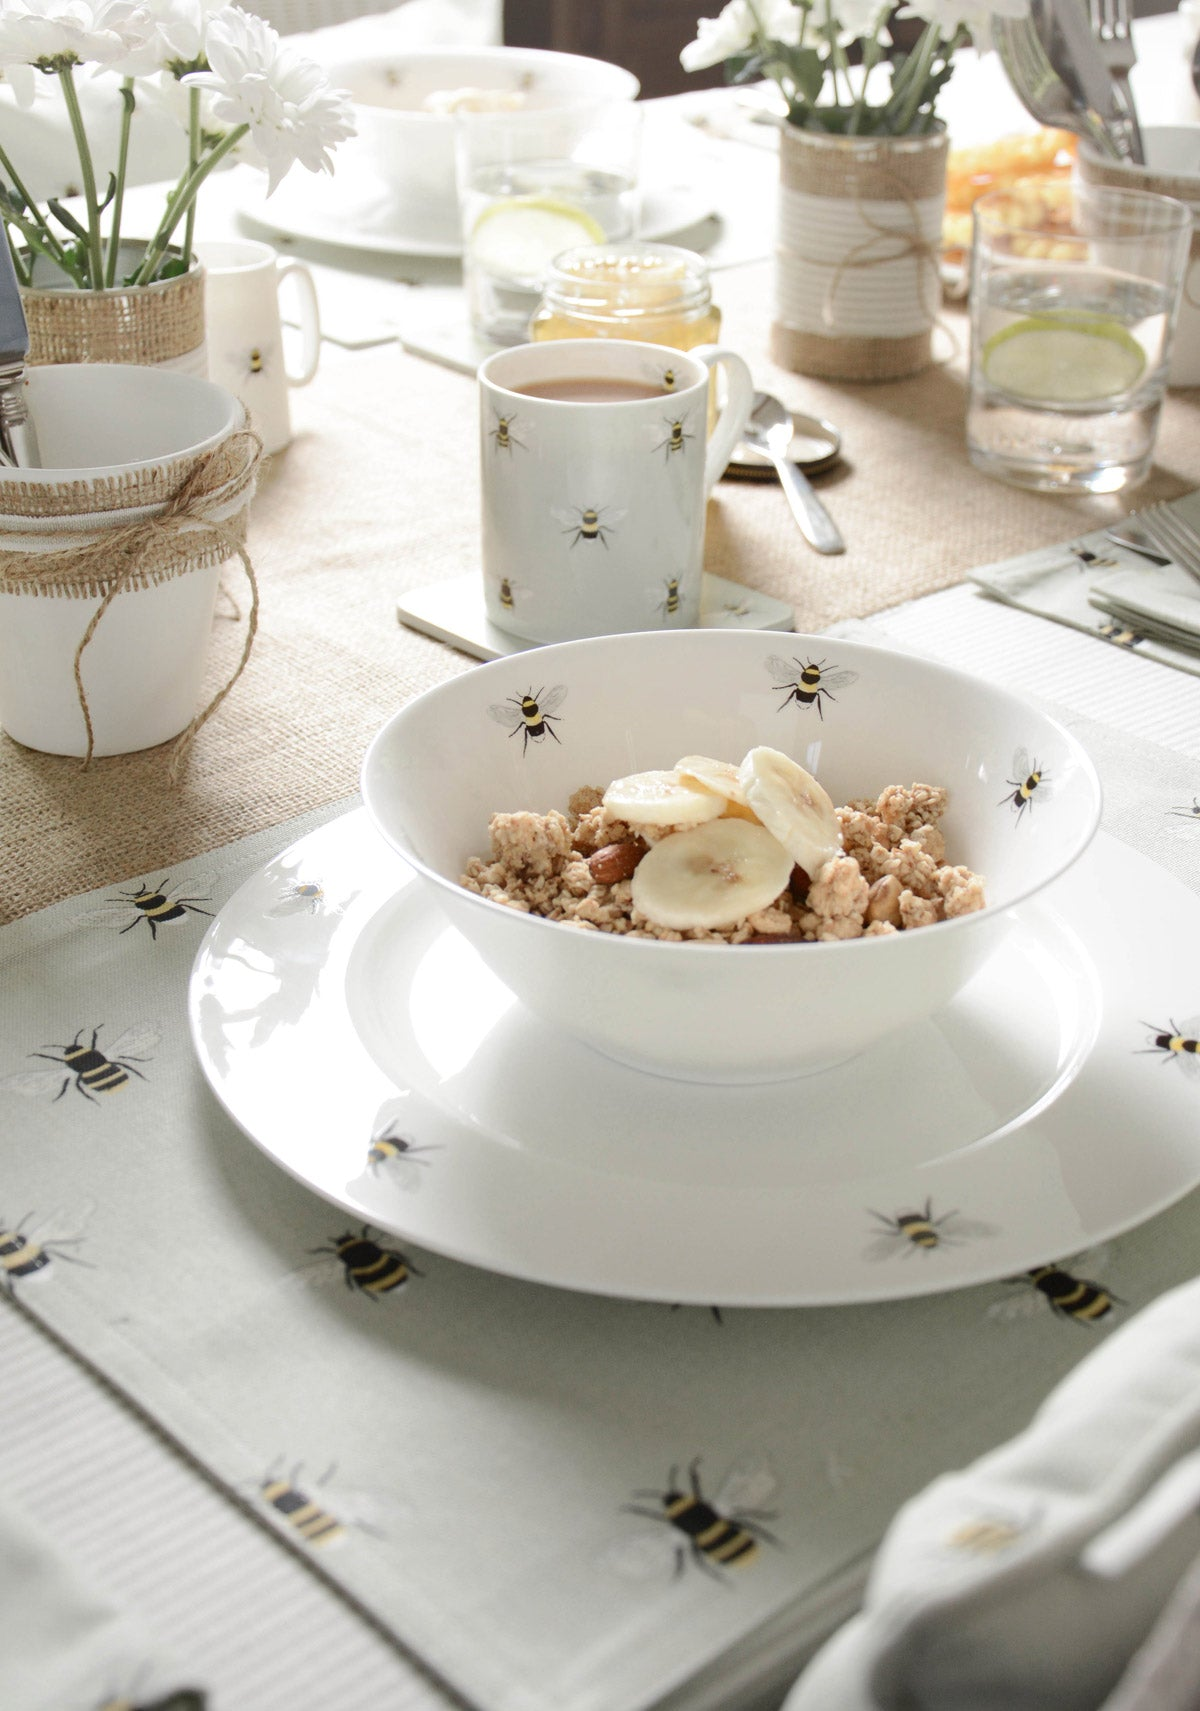 Bees Cereal Bowl